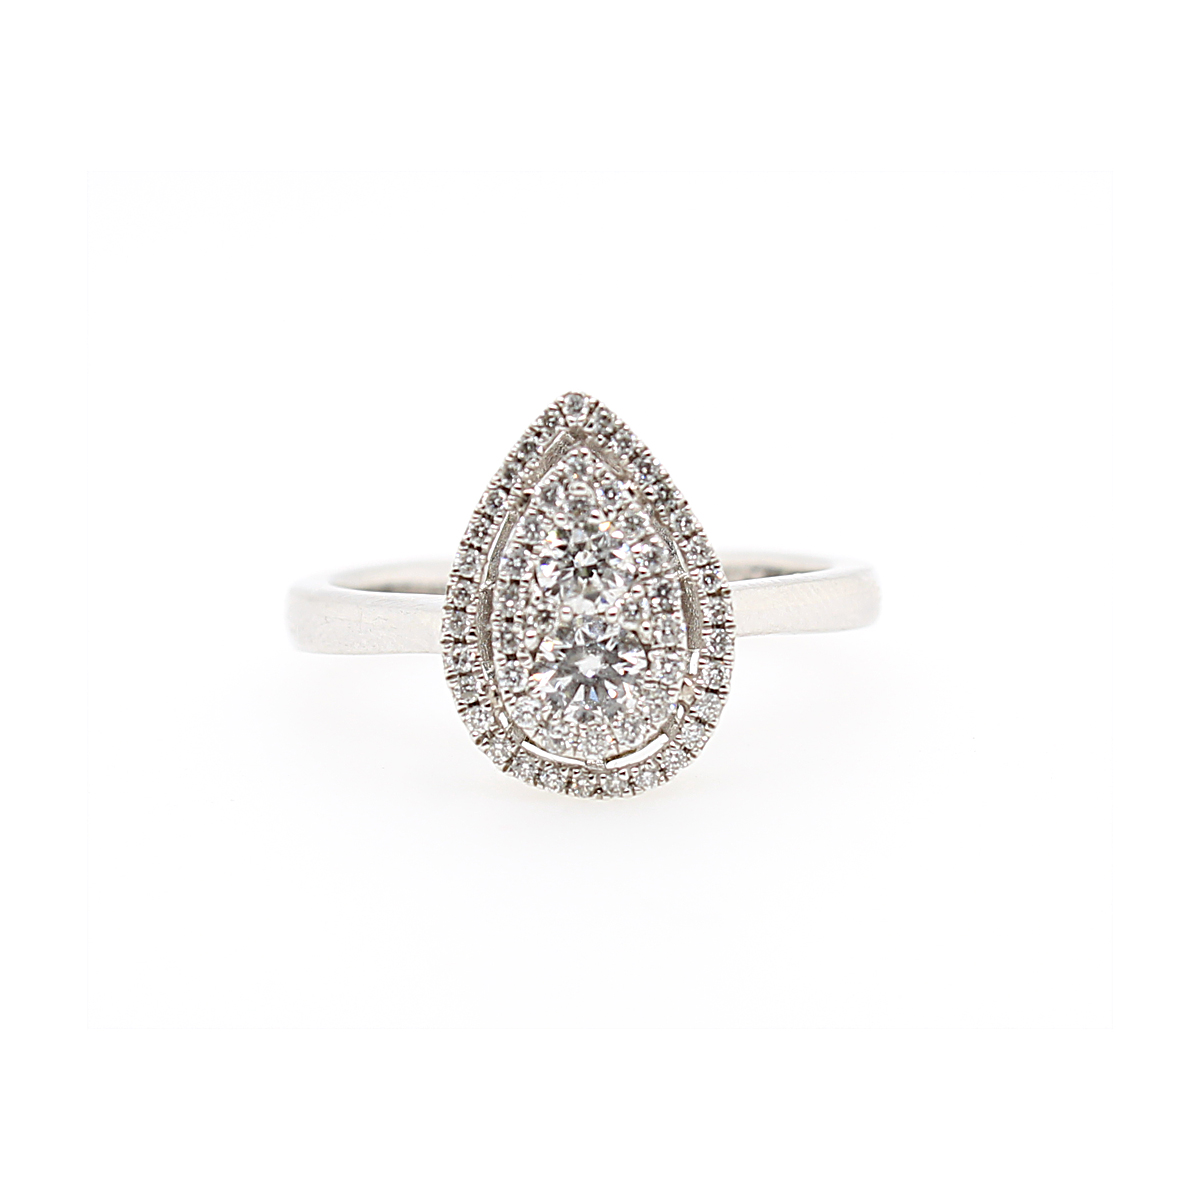 14 Karat White Gold Pear Shaped Diamond Ring